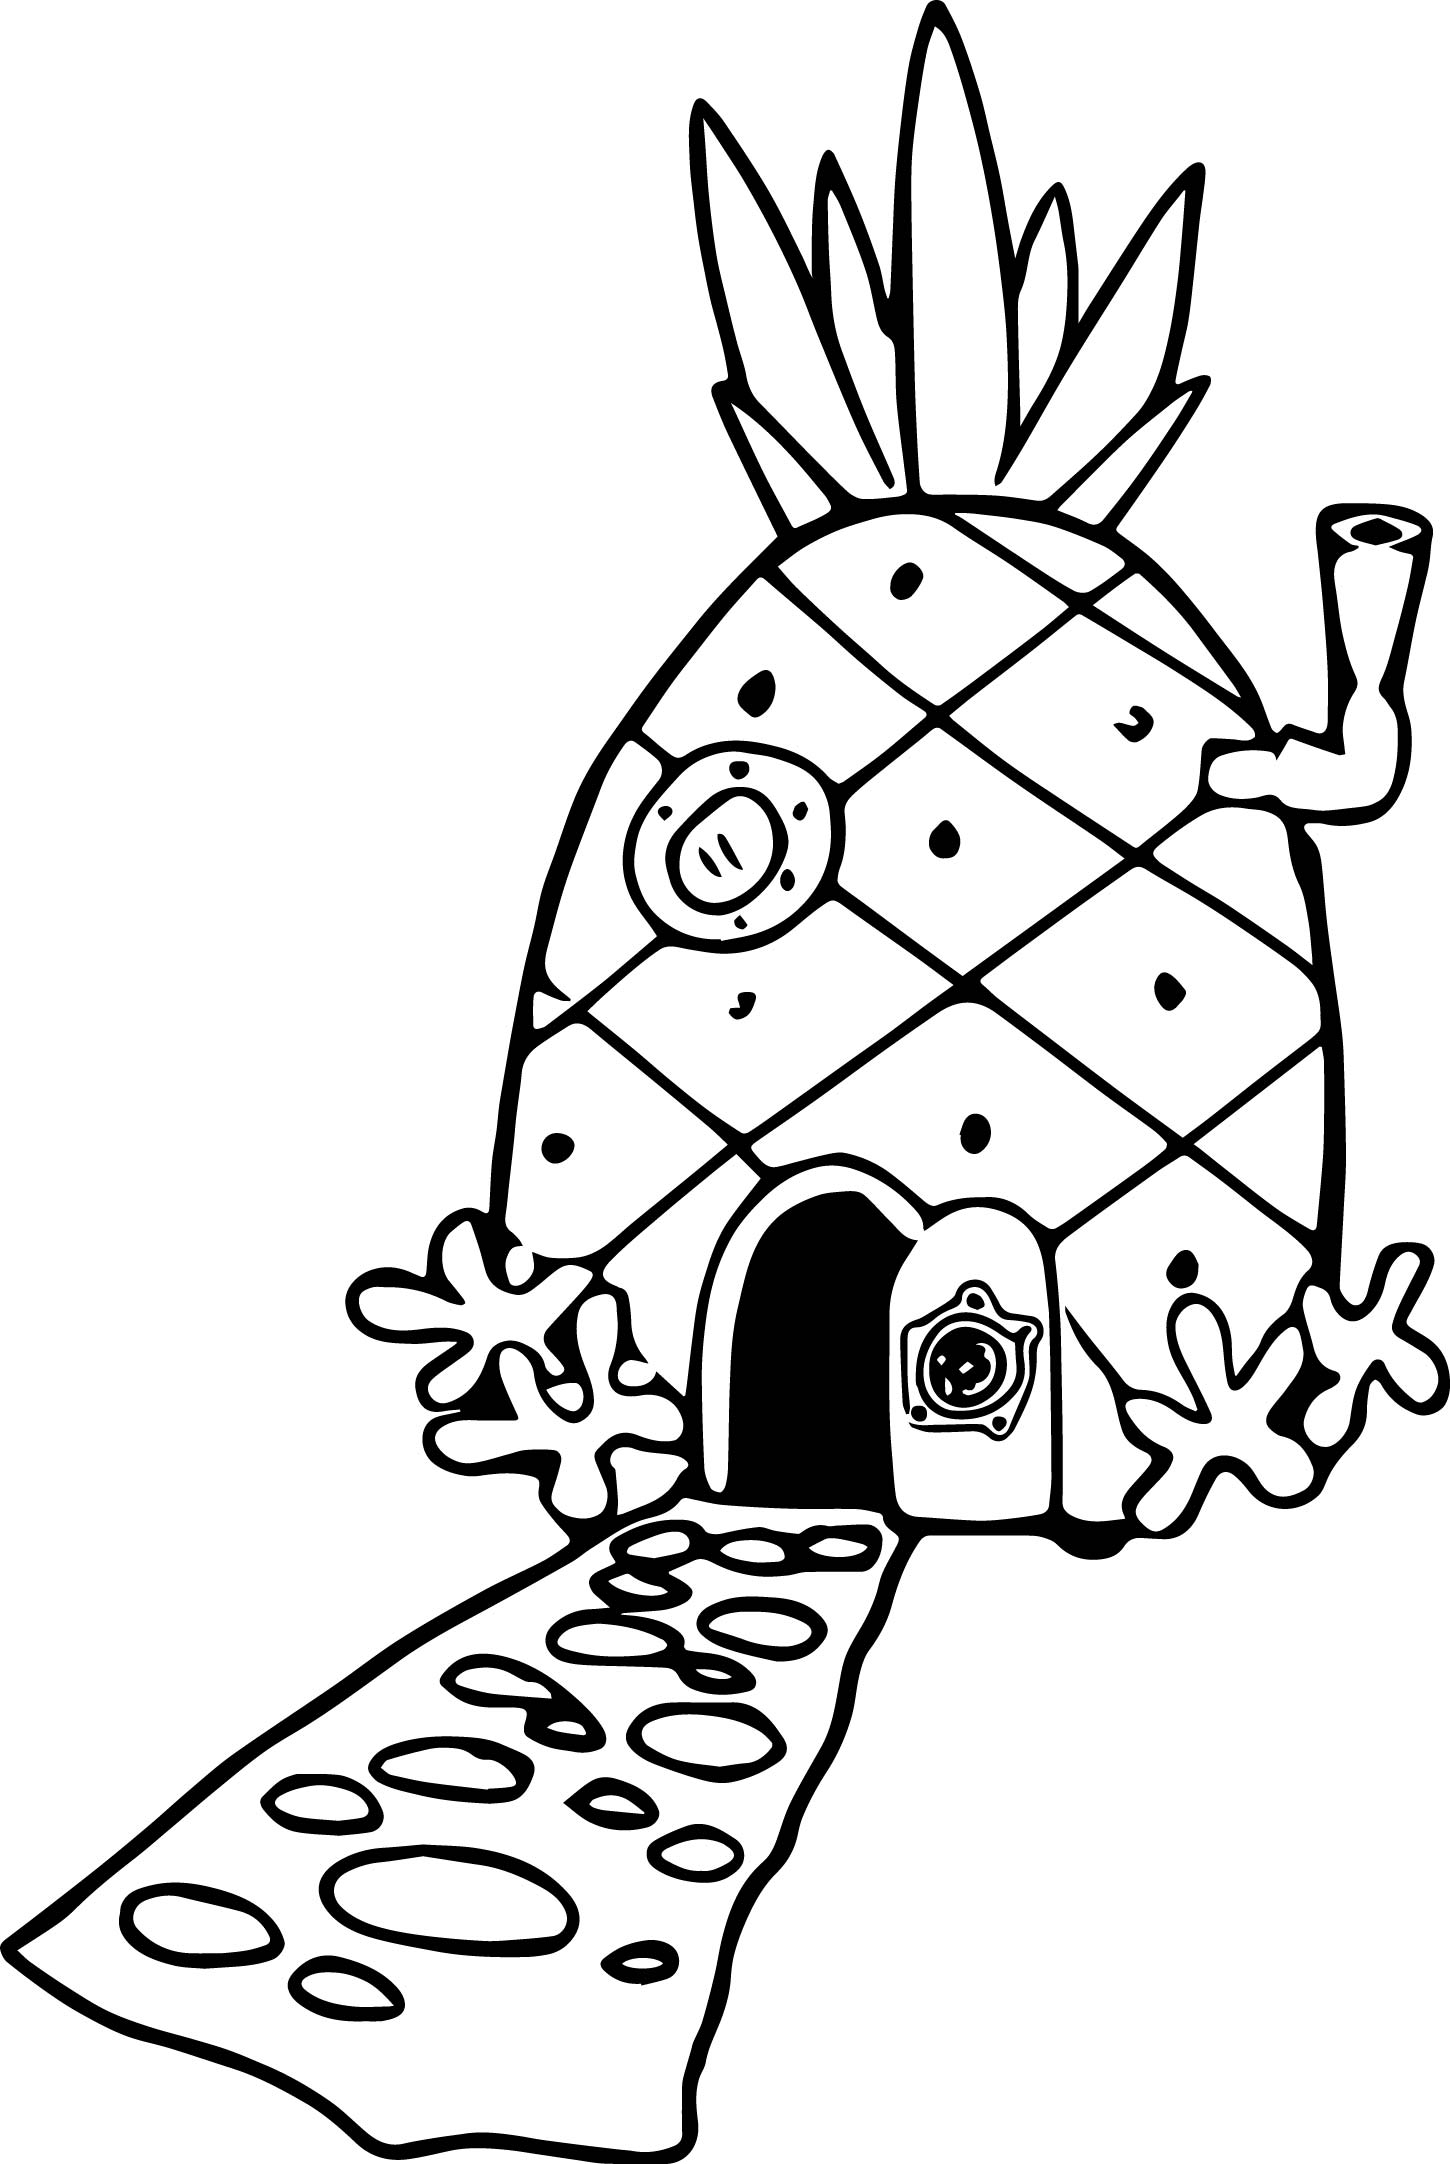 Pineapple House Coloring Page